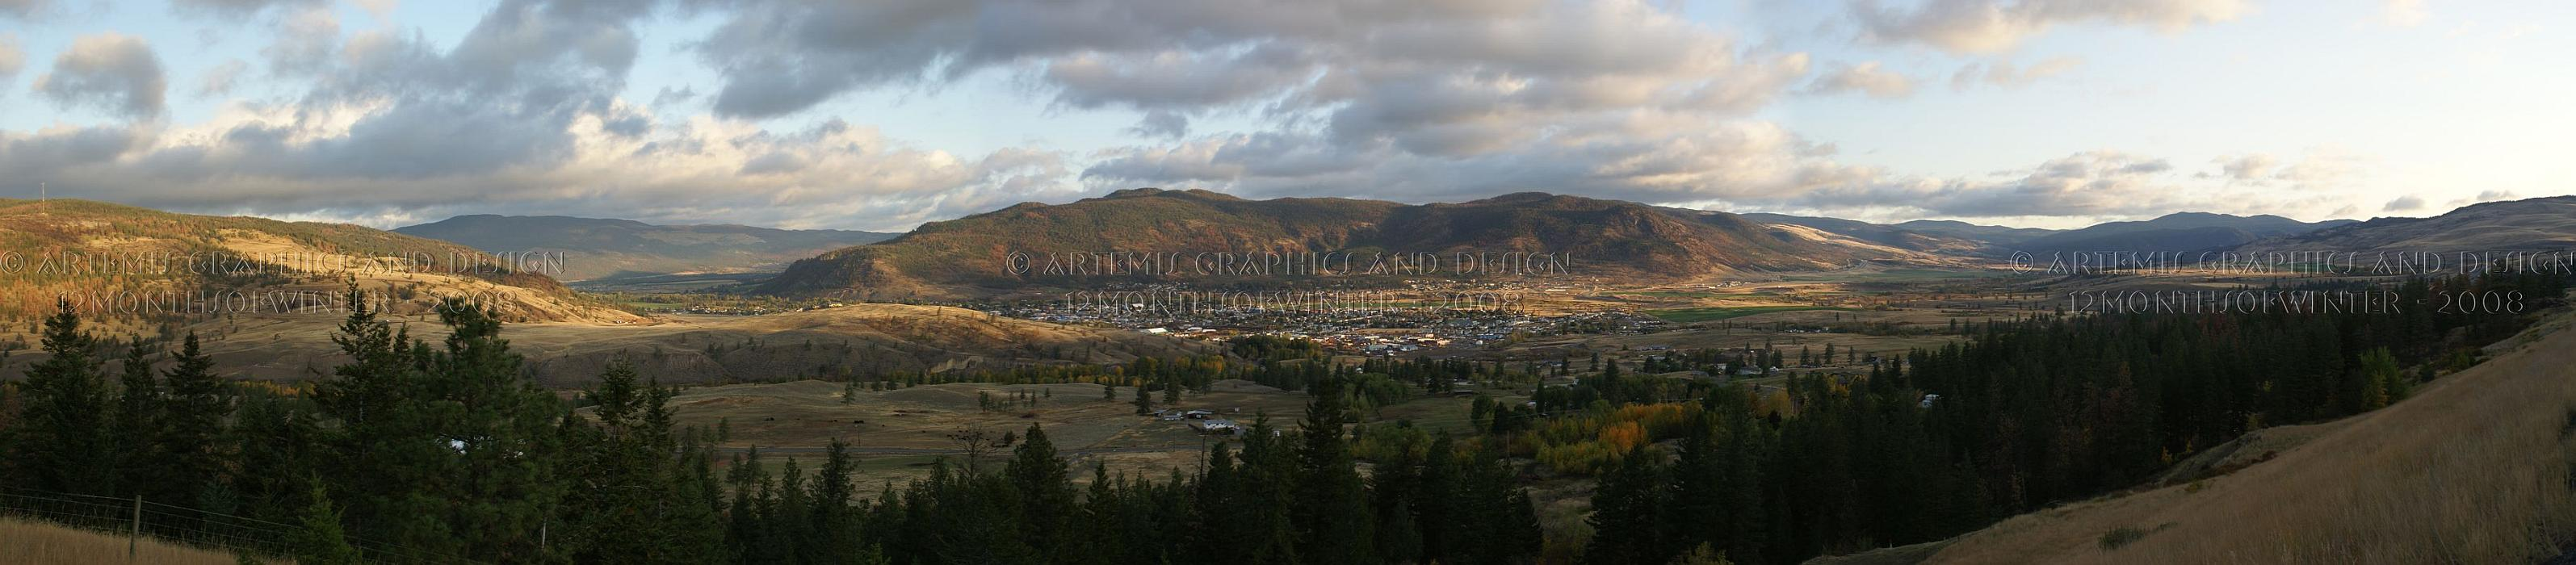 Merritt Morning Pano by 12monthsOFwinter